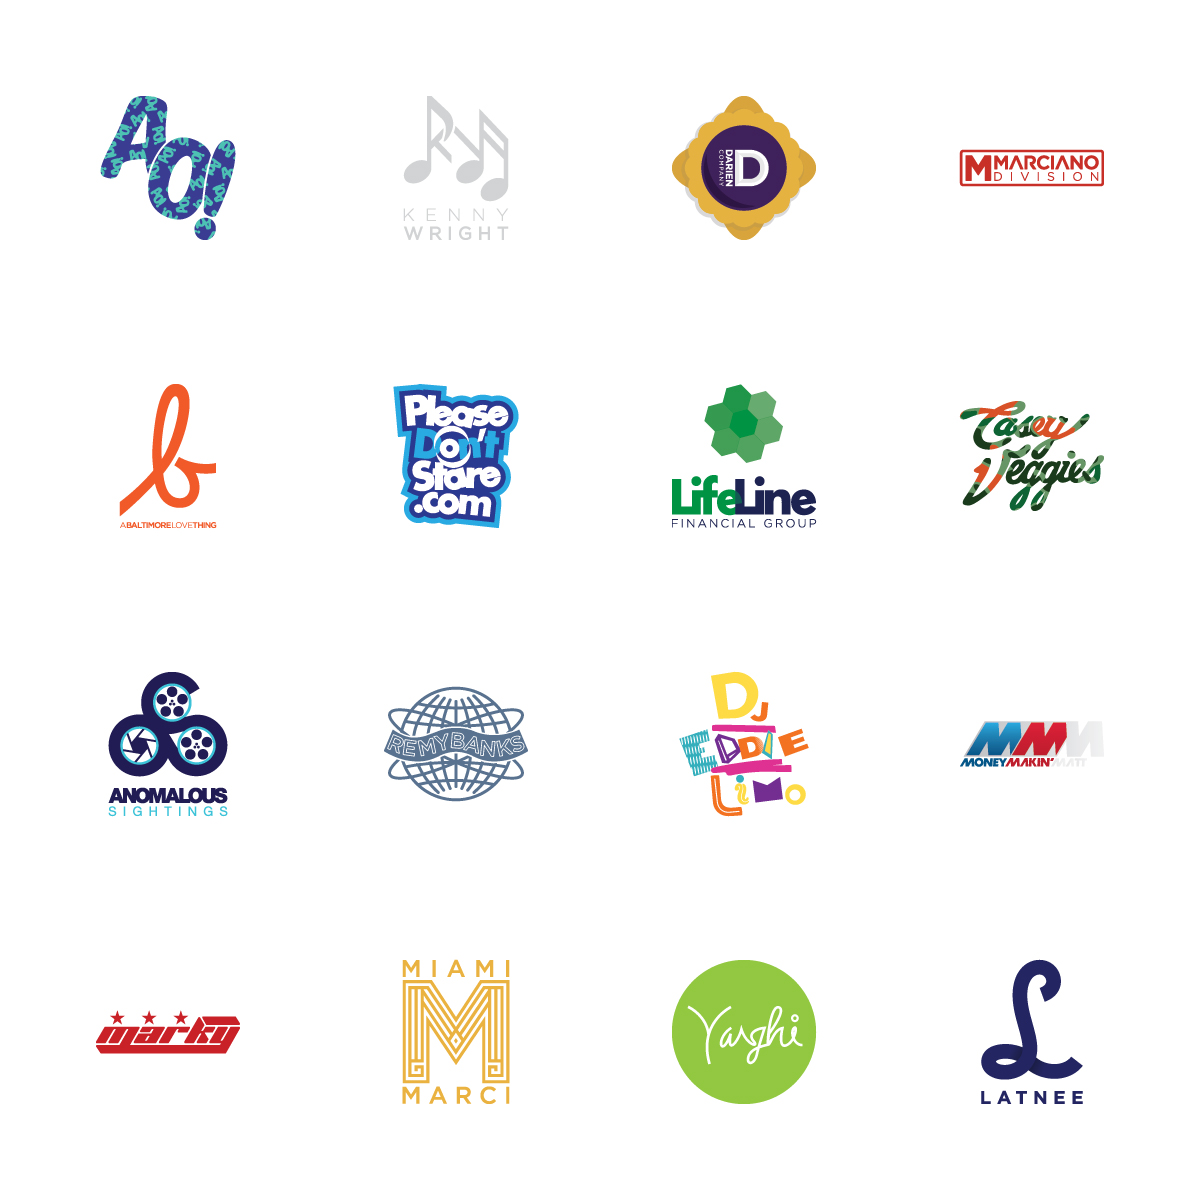 cherrycollaborative :     A sampling some of the many logos designed by Cherry Collaborative in the last 6 months…   More out there and always more on the way…  www.CherryCo.jp    For design inquires contact Cherry@CherryCo.jp